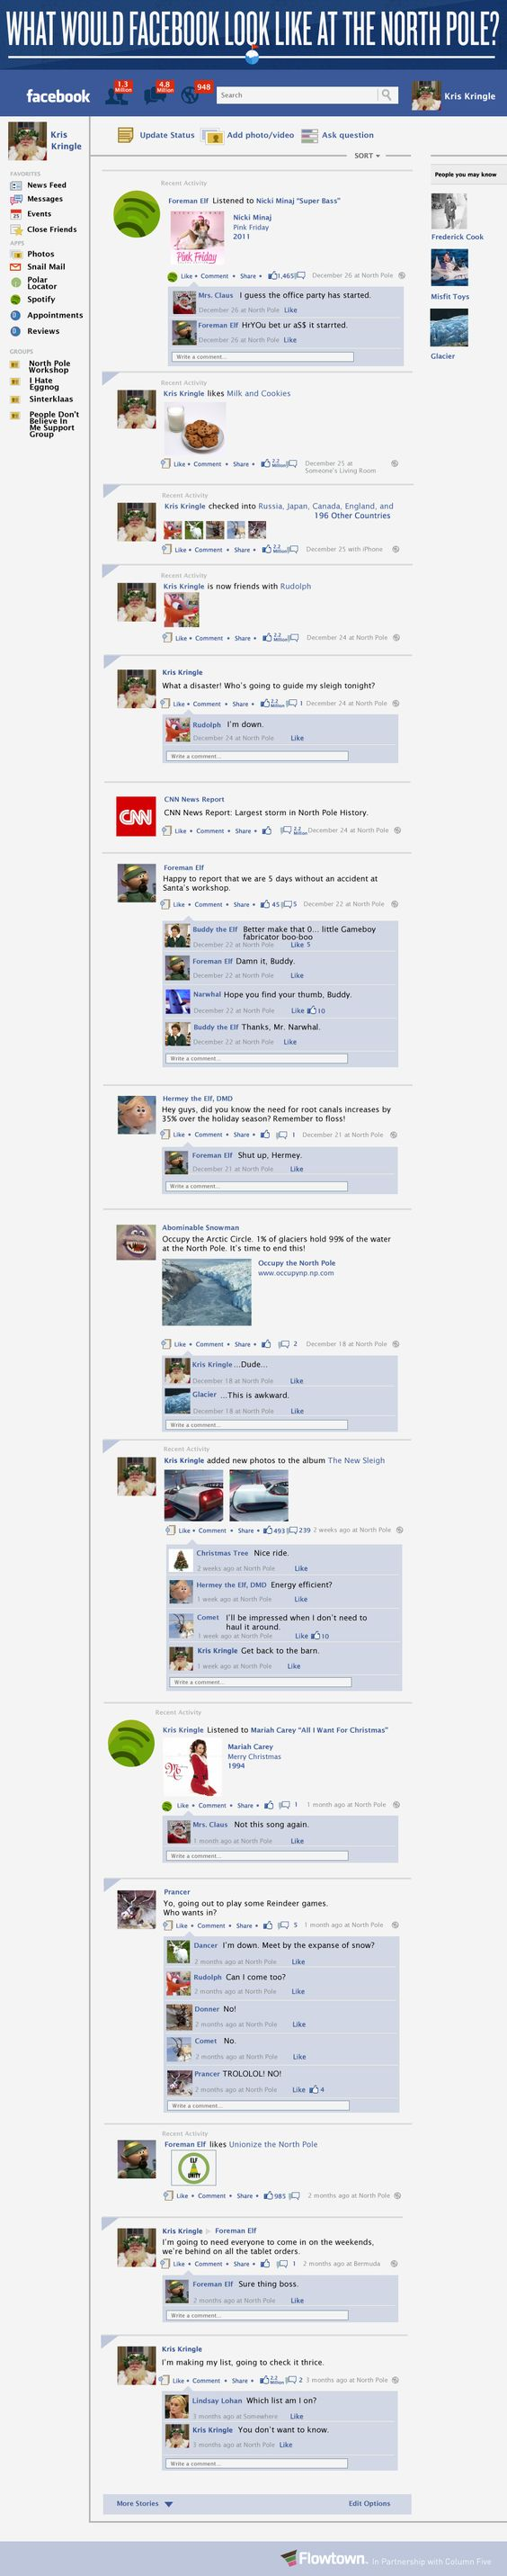 {What Would Facebook Look Like at the North Pole?} This made me smile.